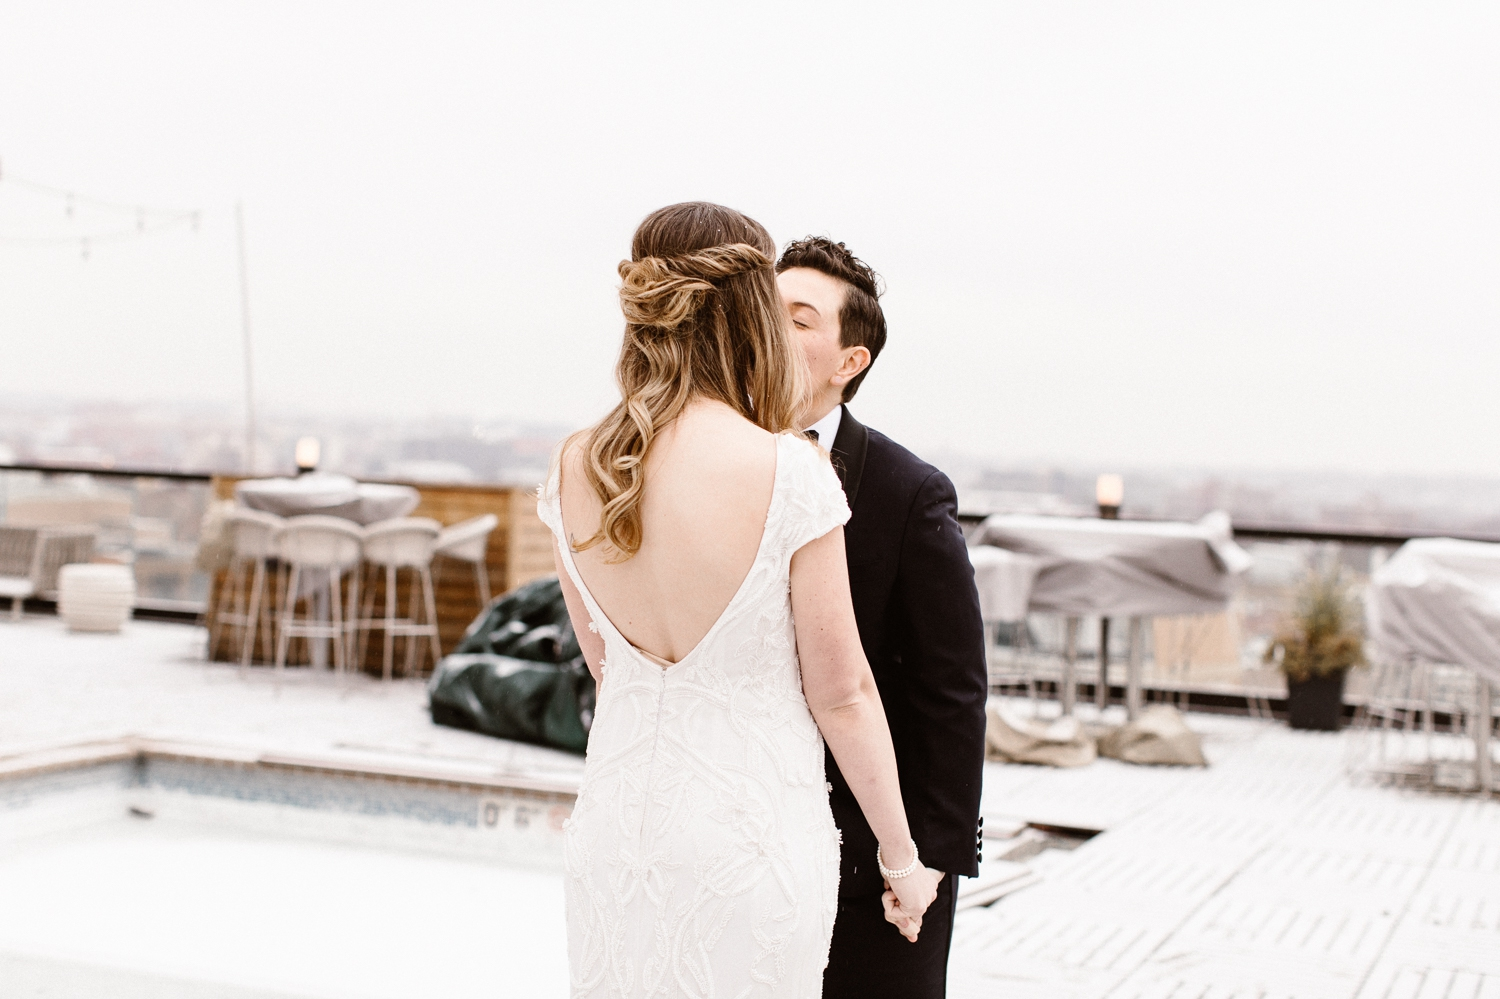 mason-and-rook-first-look-rooftop-josephine-butler-parks-wedding-photographer 57.jpg